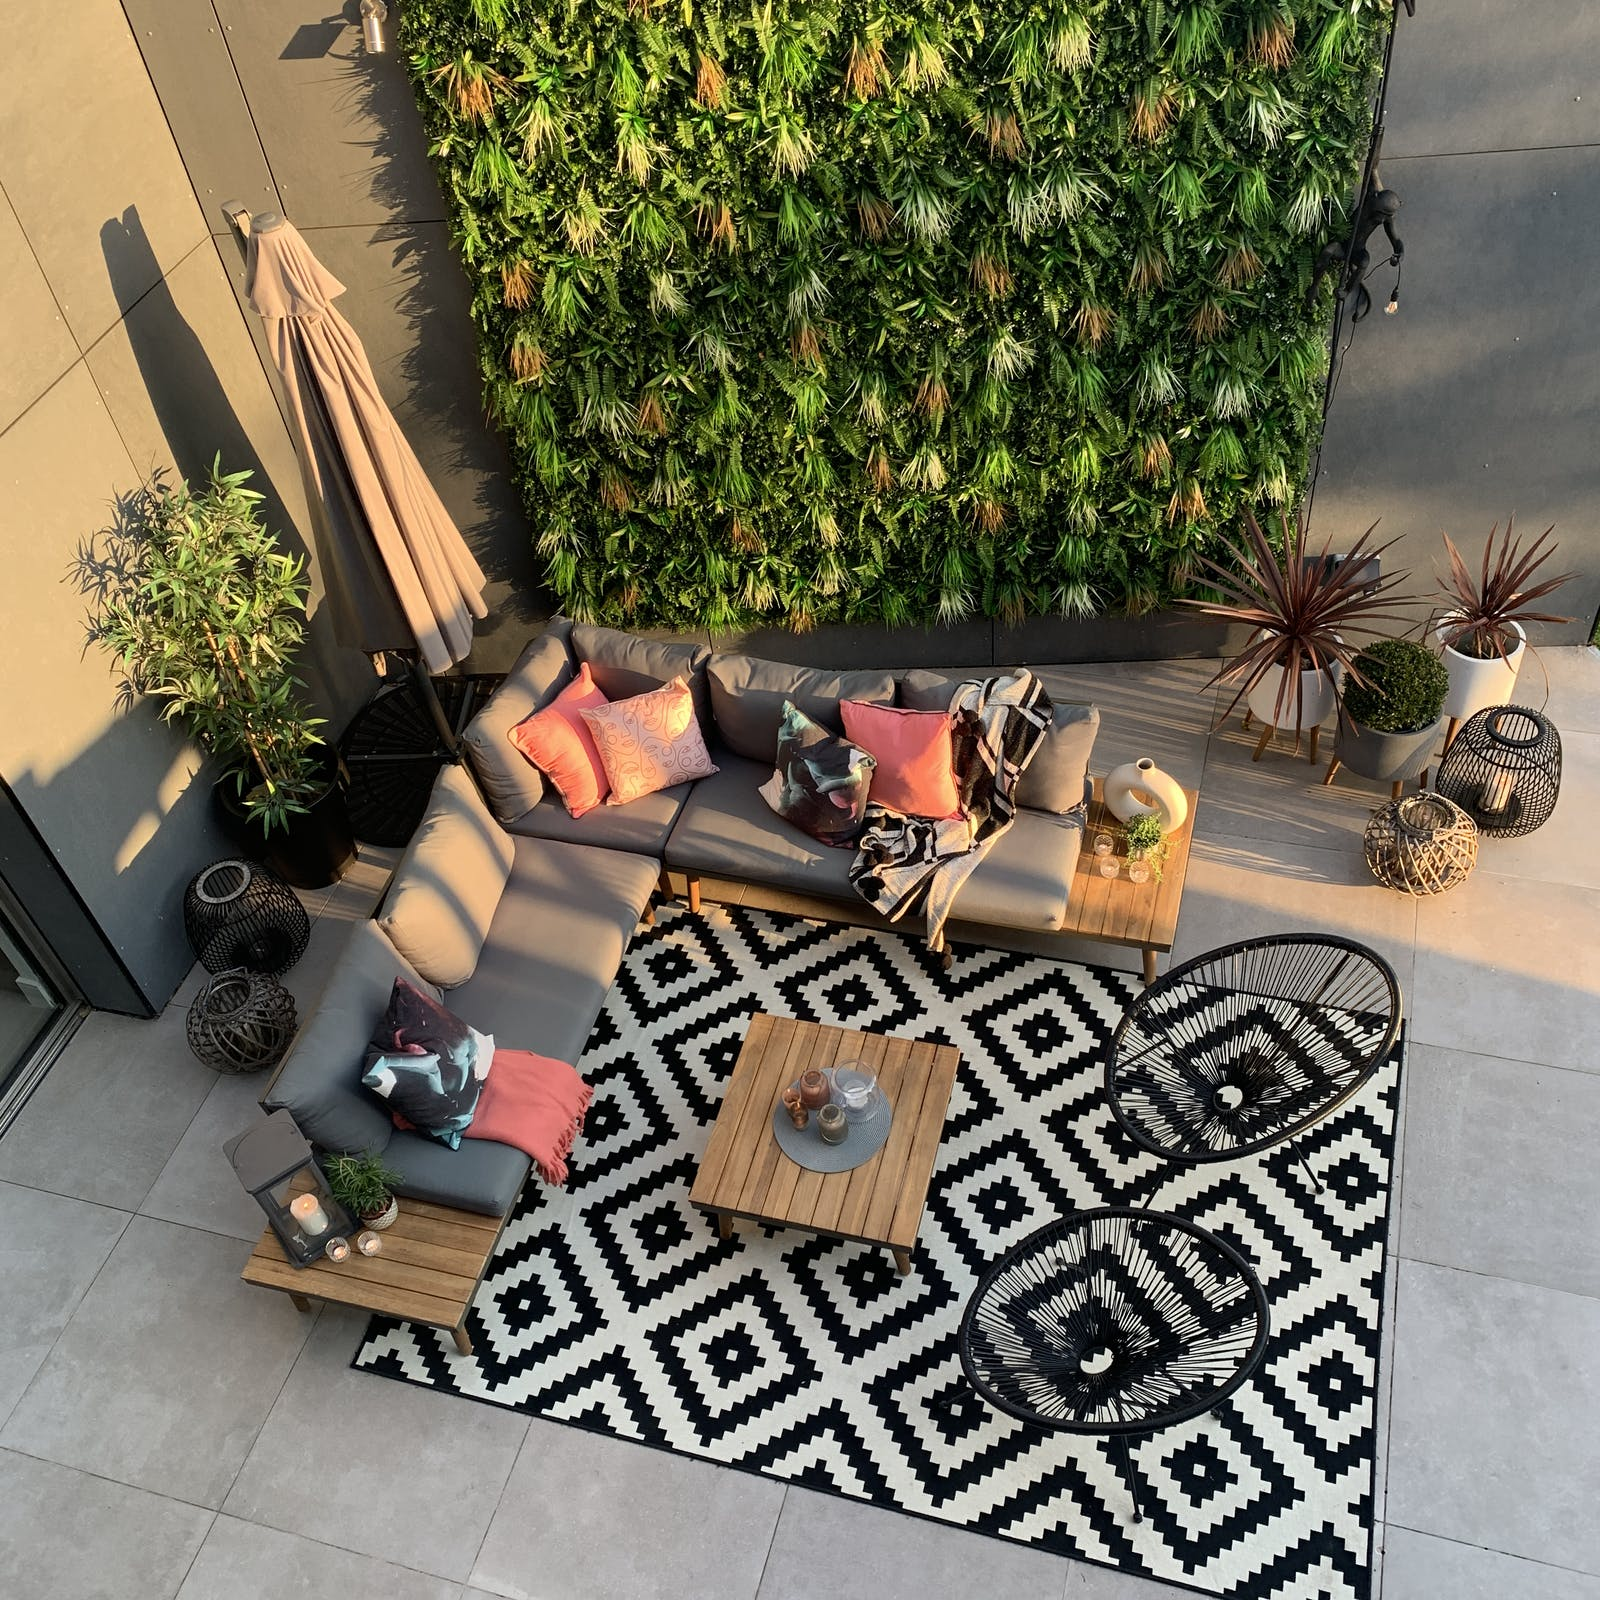 Bird's eye view of a courtyard with hanging plants covering a wall, and a monochrome geometric outdoor rug in the seating area